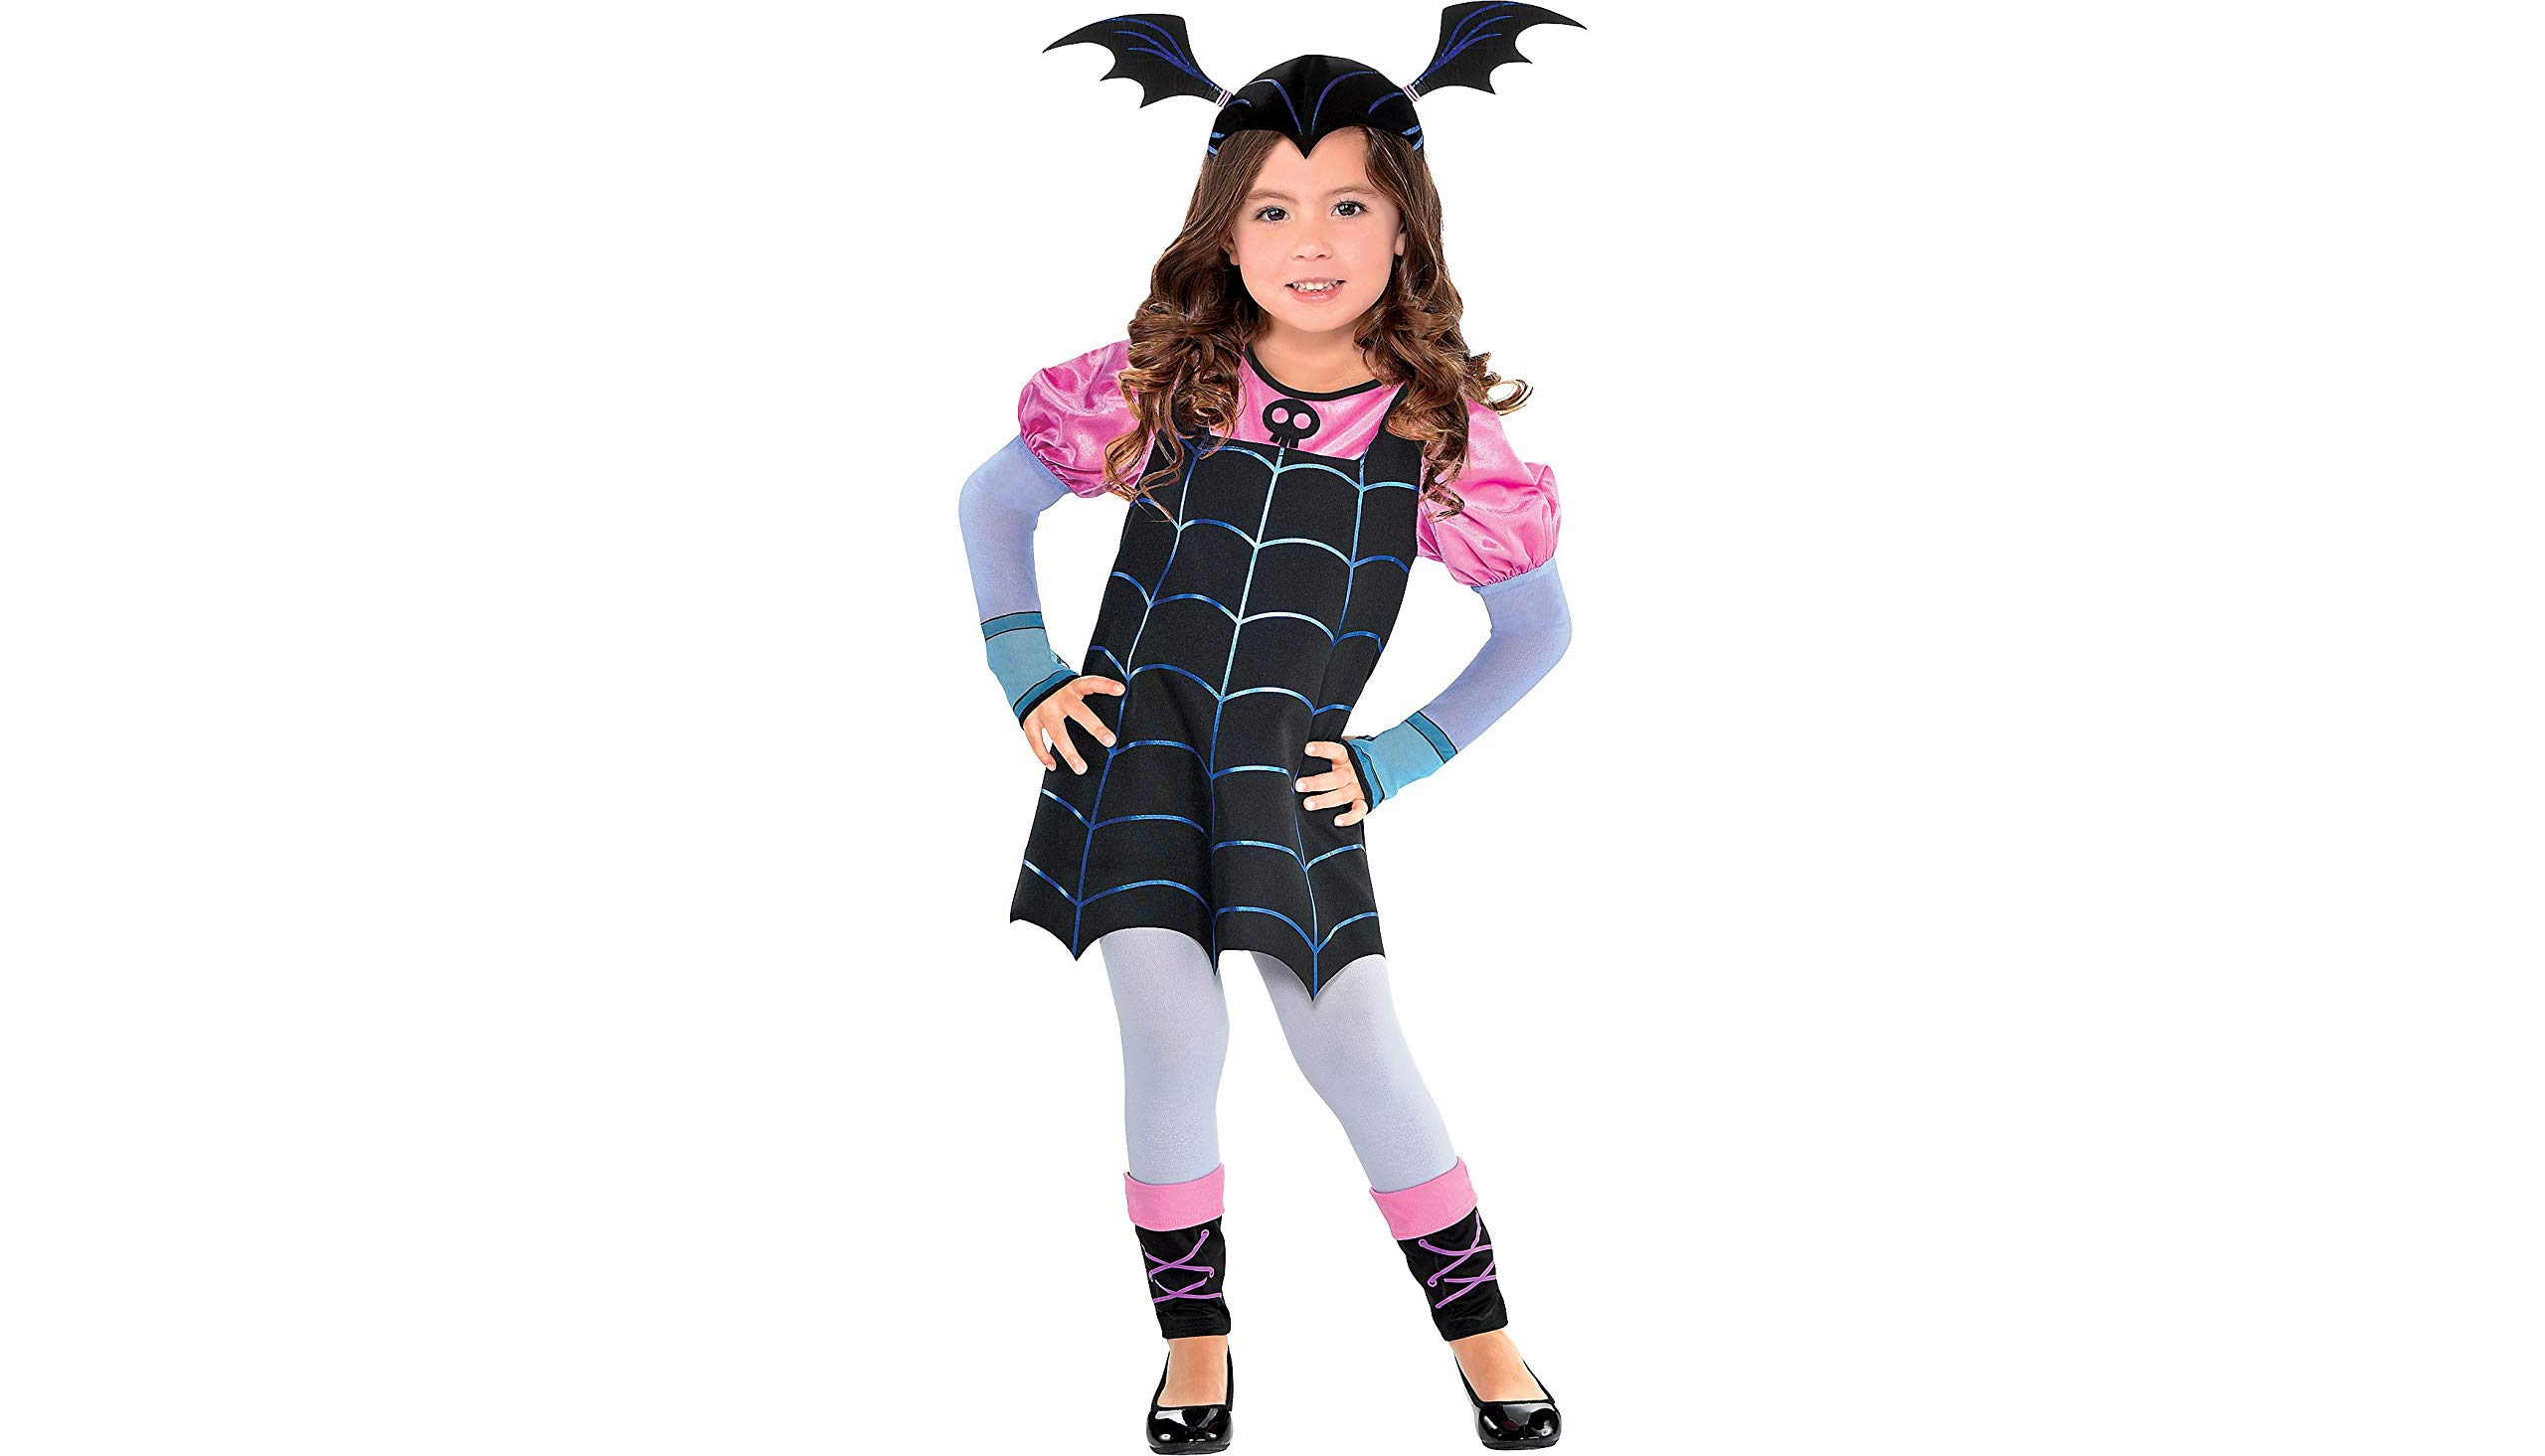 Vampirina Vee Costume for Toddler Girls, 3-4T, with Included Accessories, by Party City